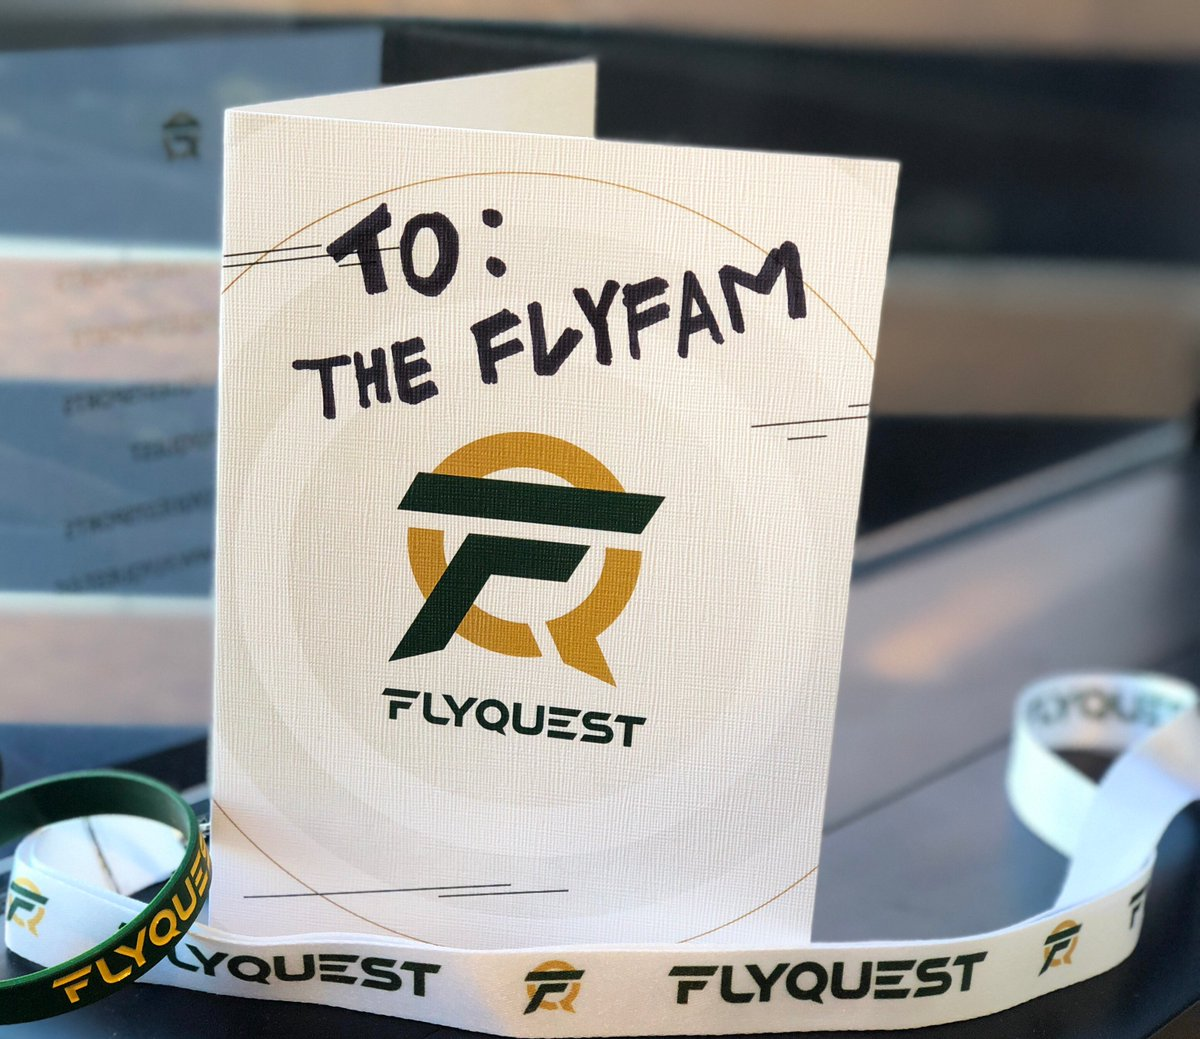 FlyQuest on Twitter: